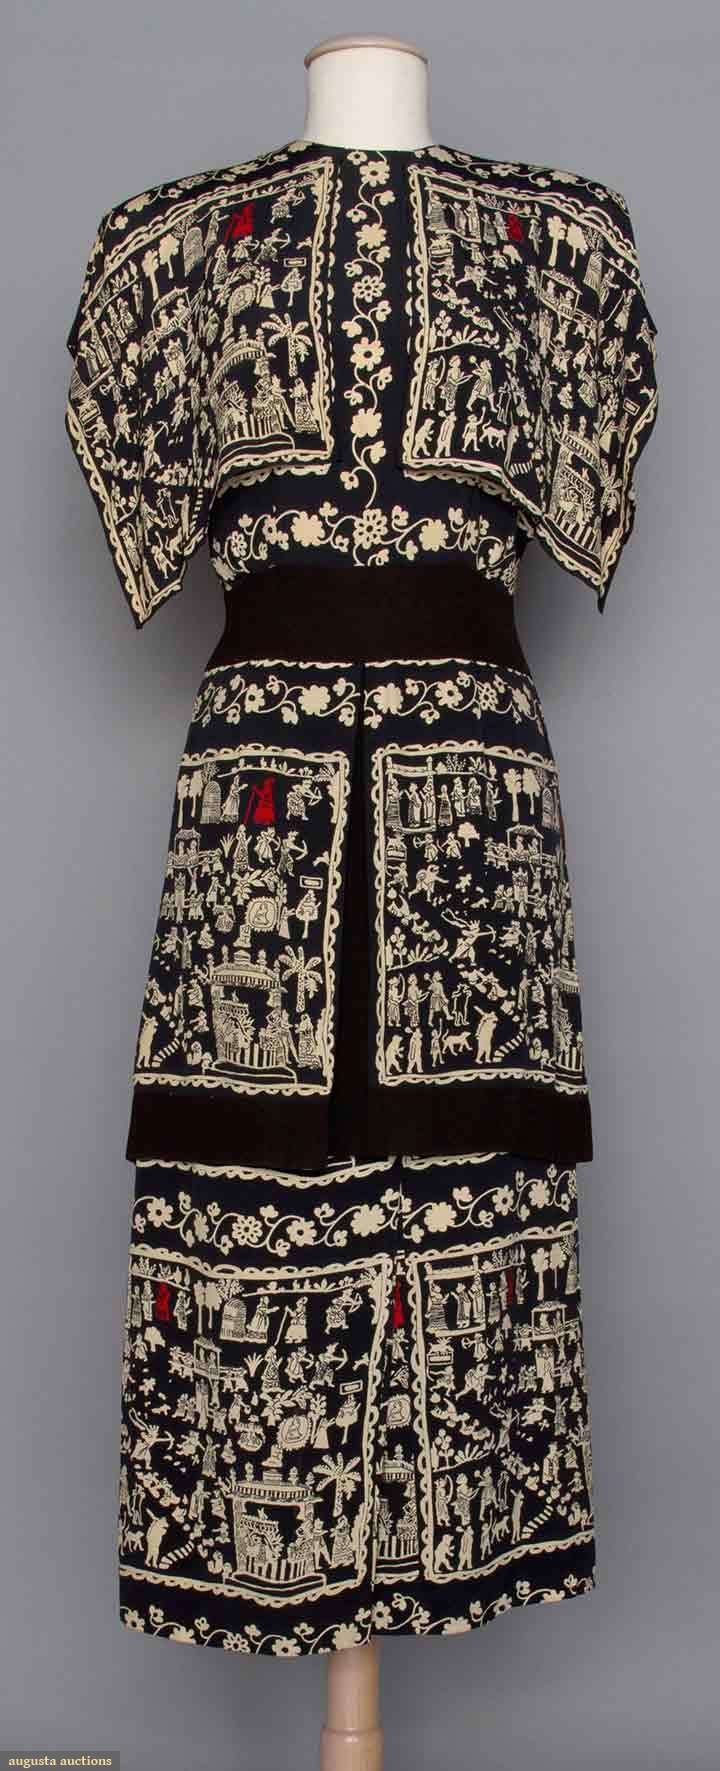 Adrian Silk Print Afternoon Dress, 1940s. This would look amazing on anyone